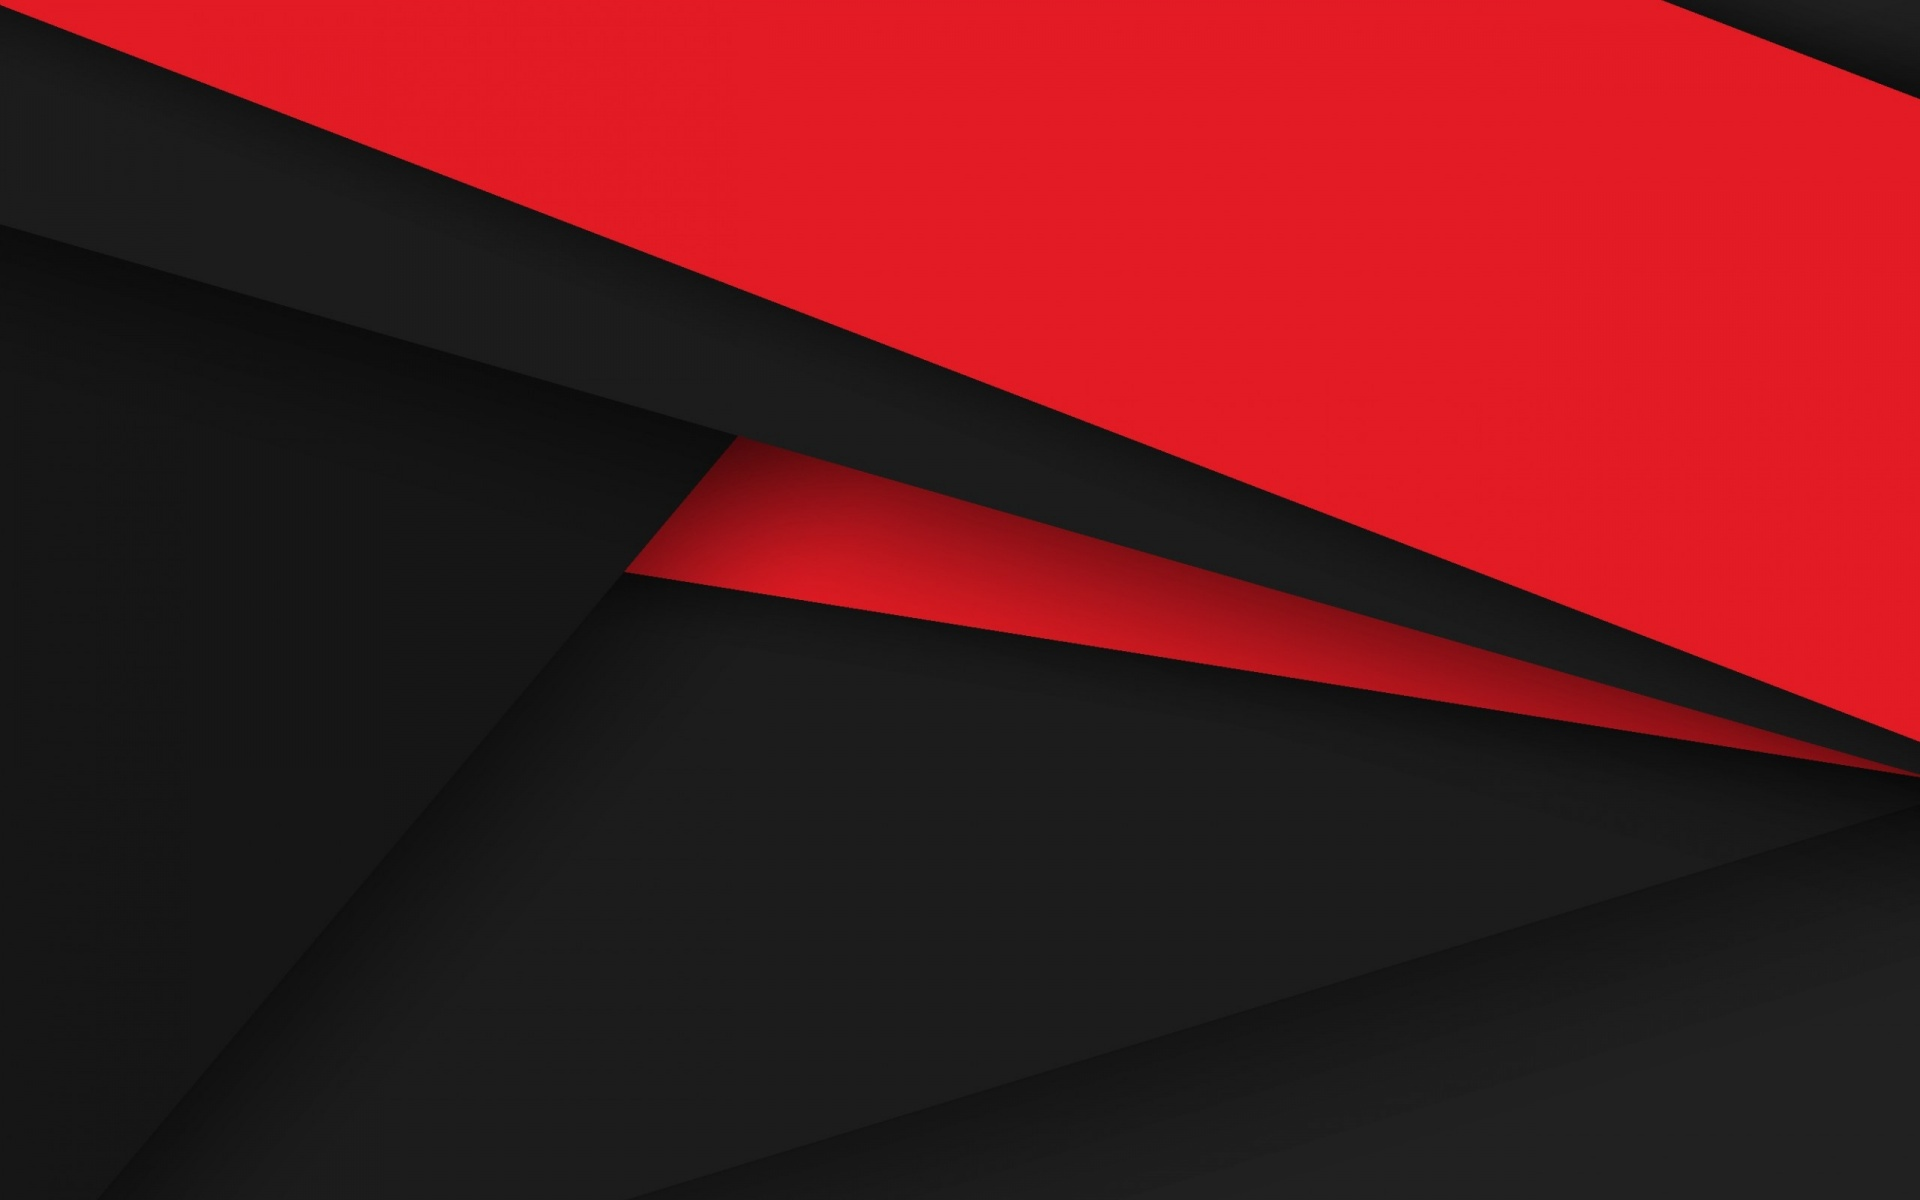 Red And Black Abstraction Stripes Wallpapers  1920x1200